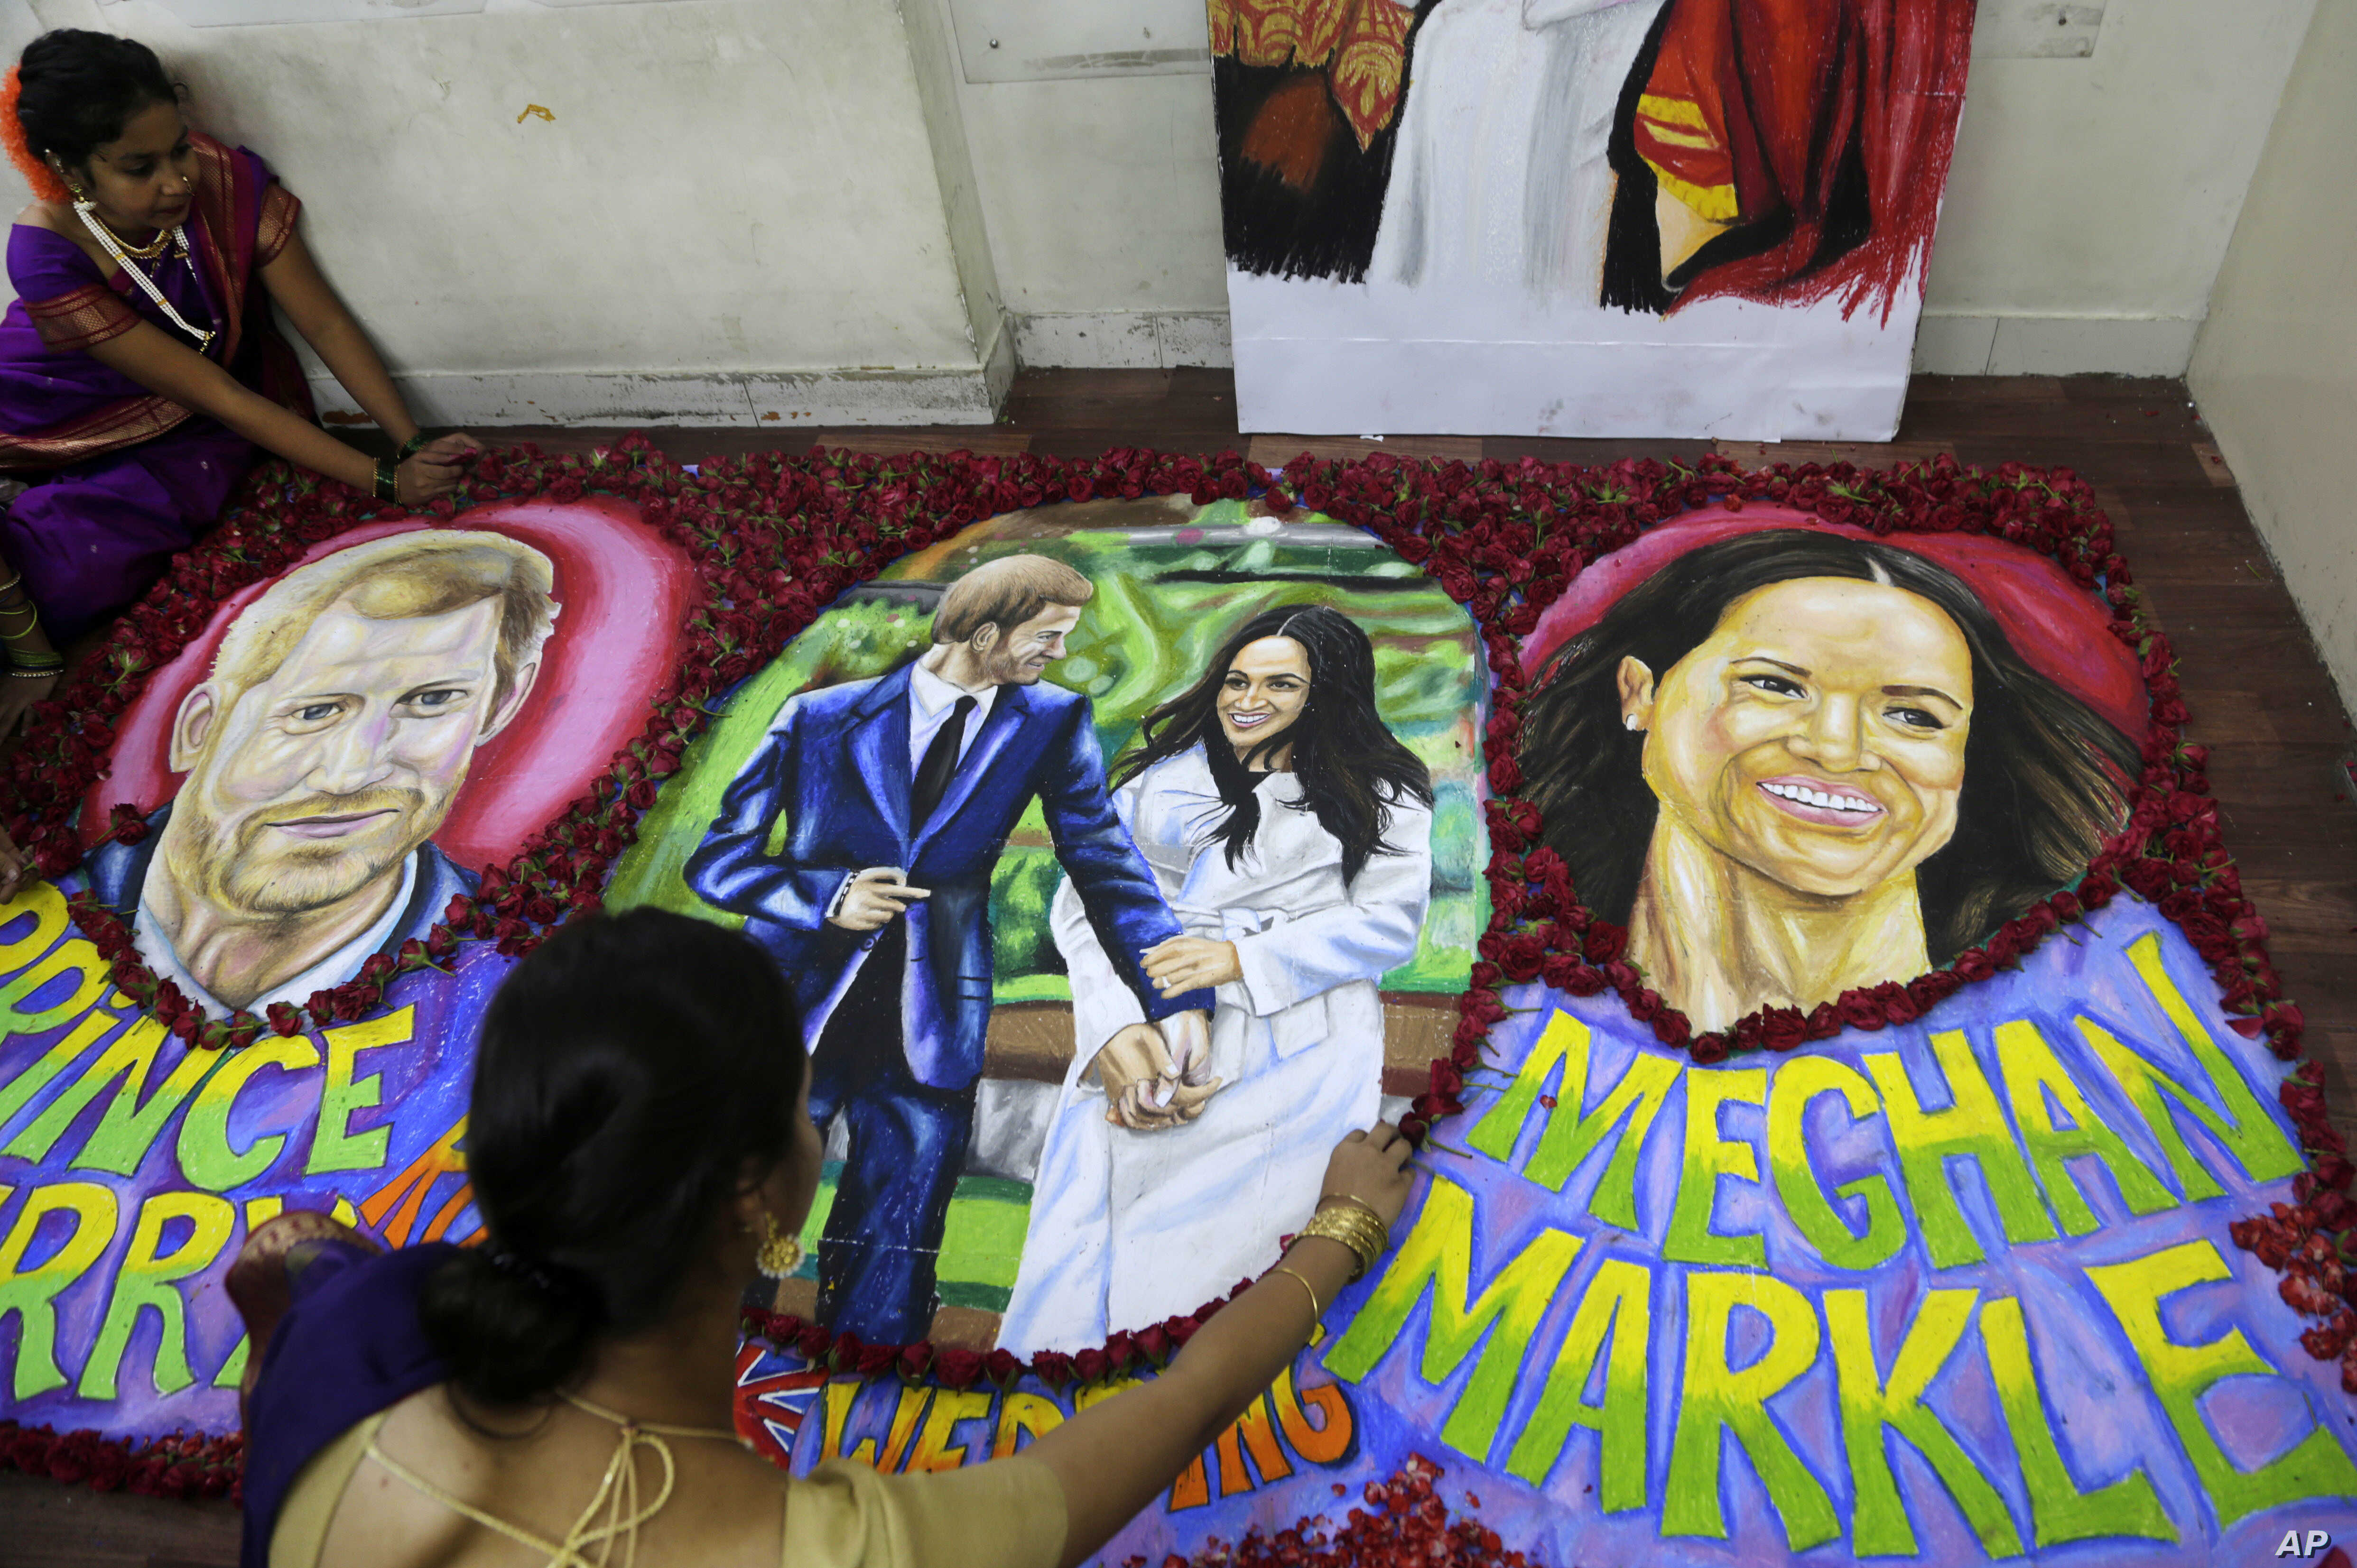 Students of an art school decorate paintings of Britain's Prince Harry and Meghan Markle with flower petals in Mumbai, India, May 18, 2018. The royal wedding is set for May 19 at England's Windsor Castle.